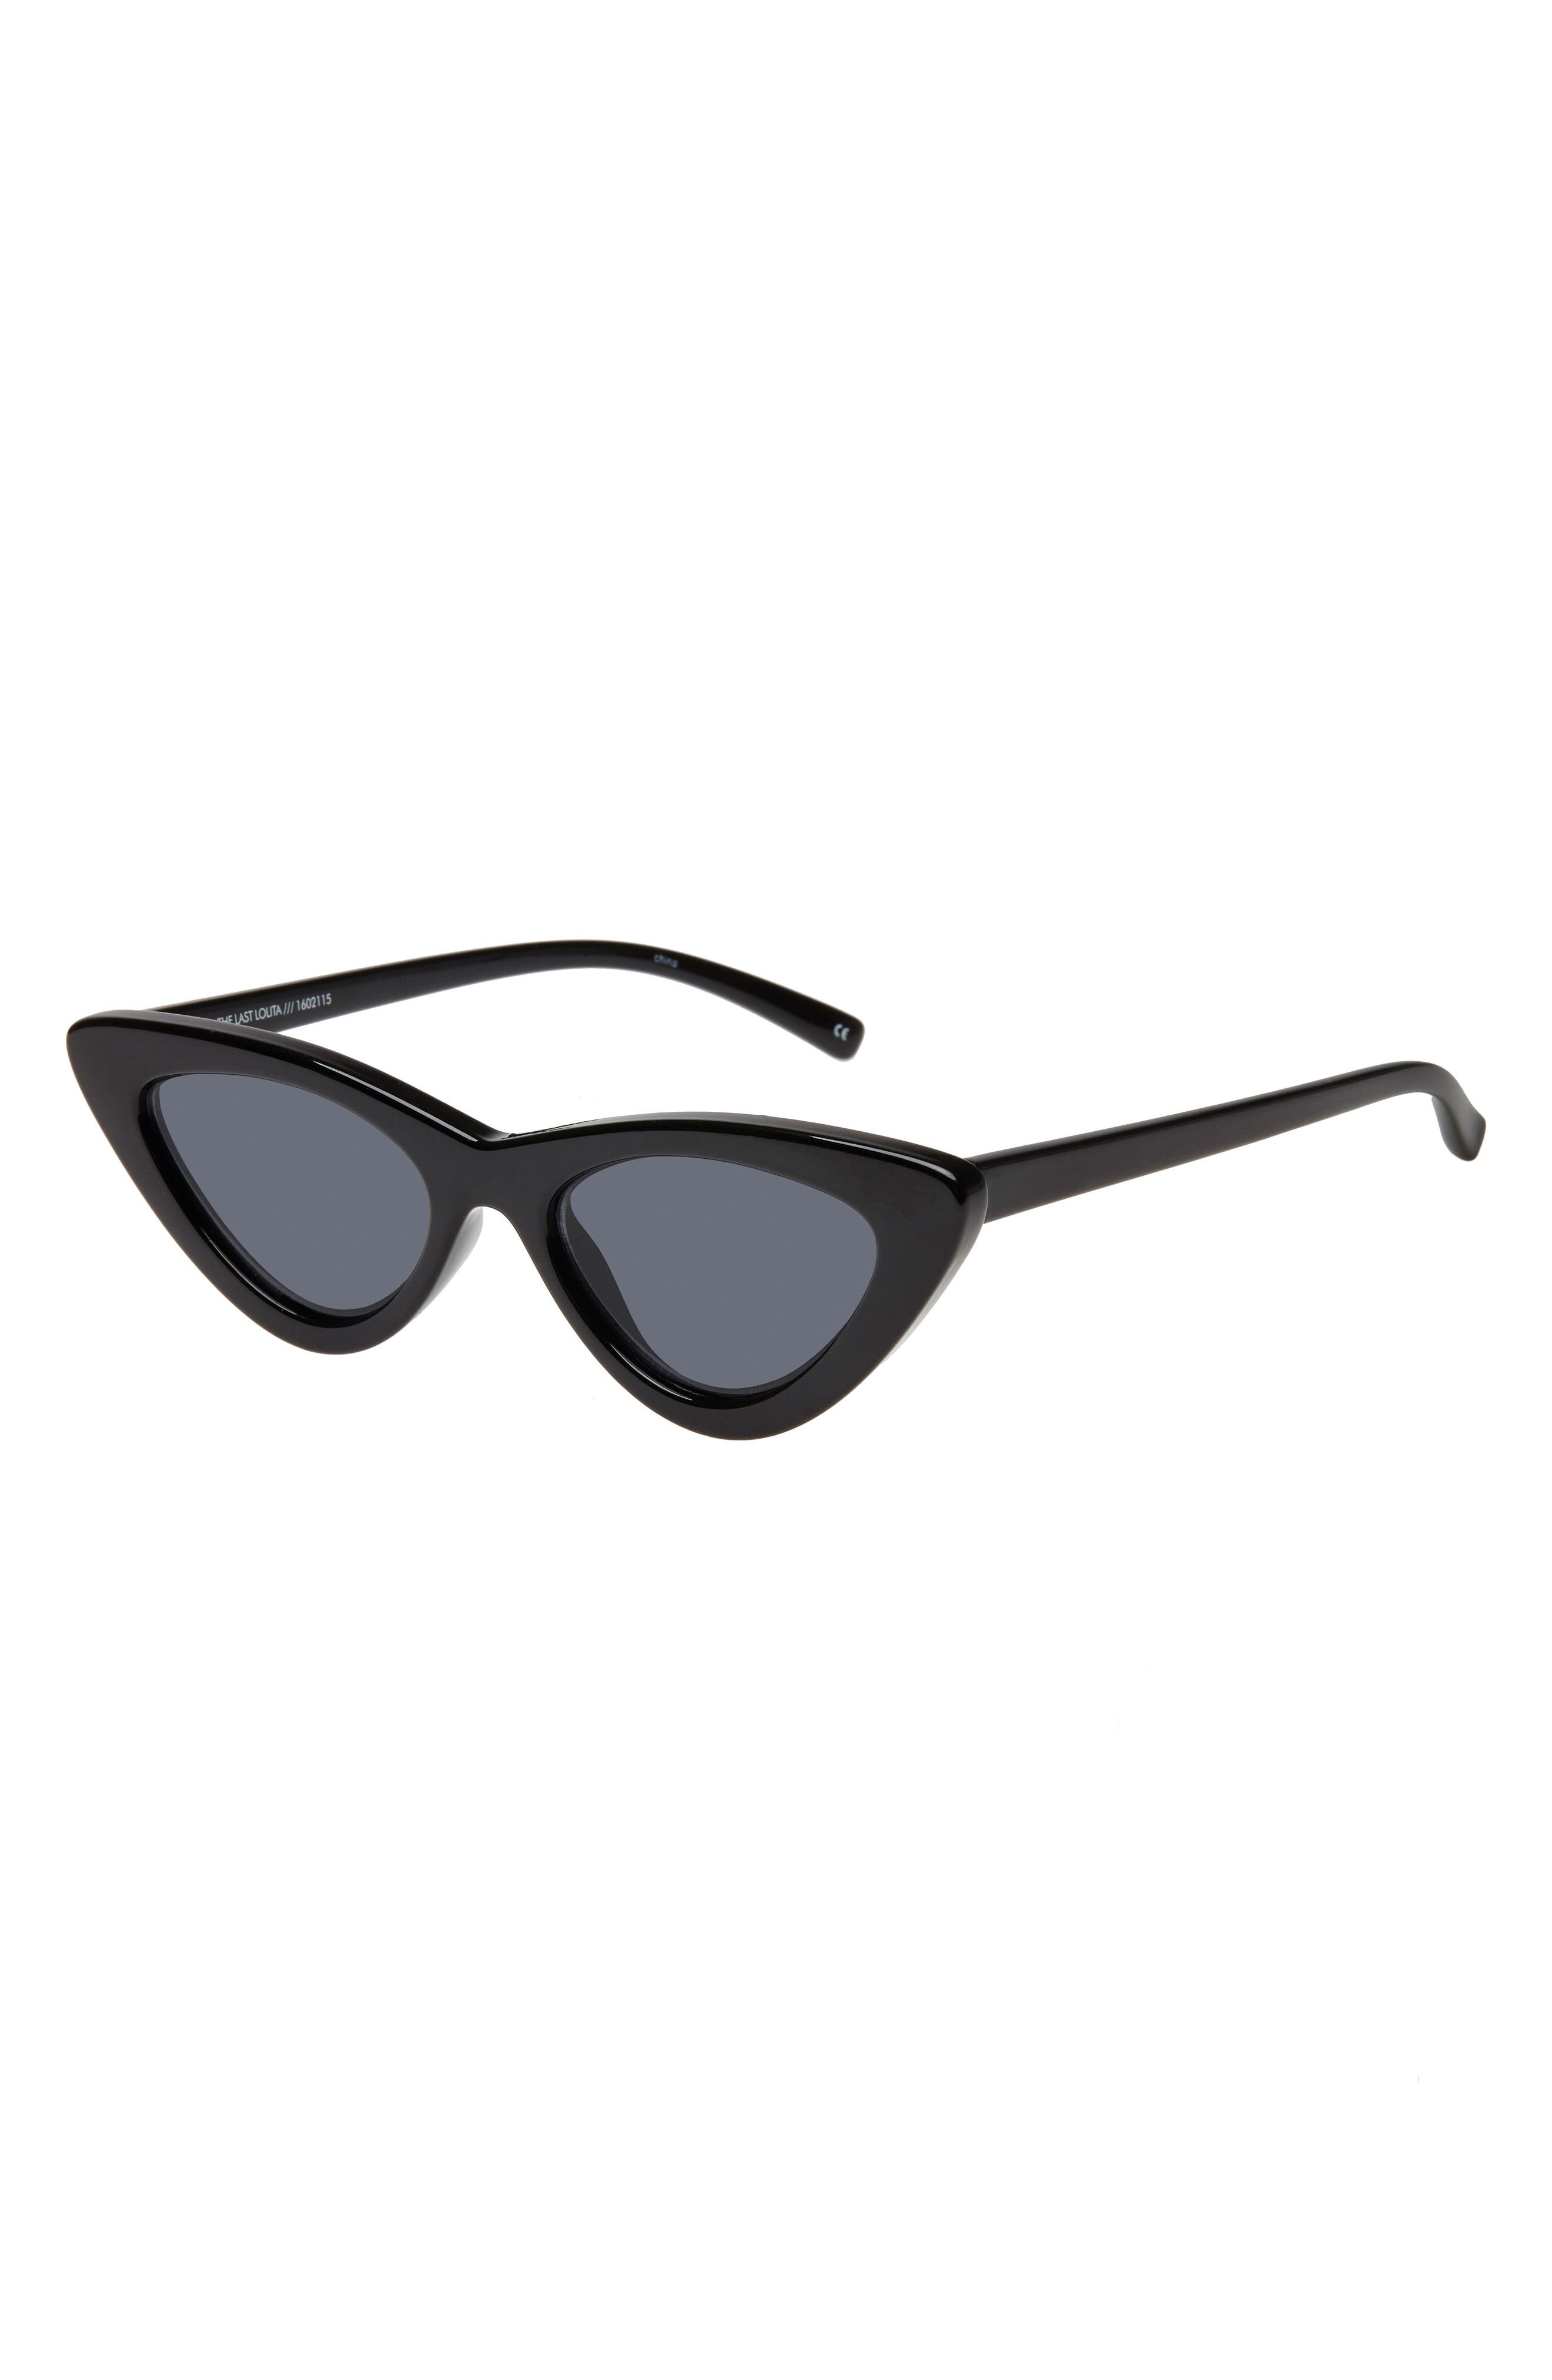 Lolita 49mm Cat Eye Sunglasses,                             Alternate thumbnail 2, color,                             BLACK